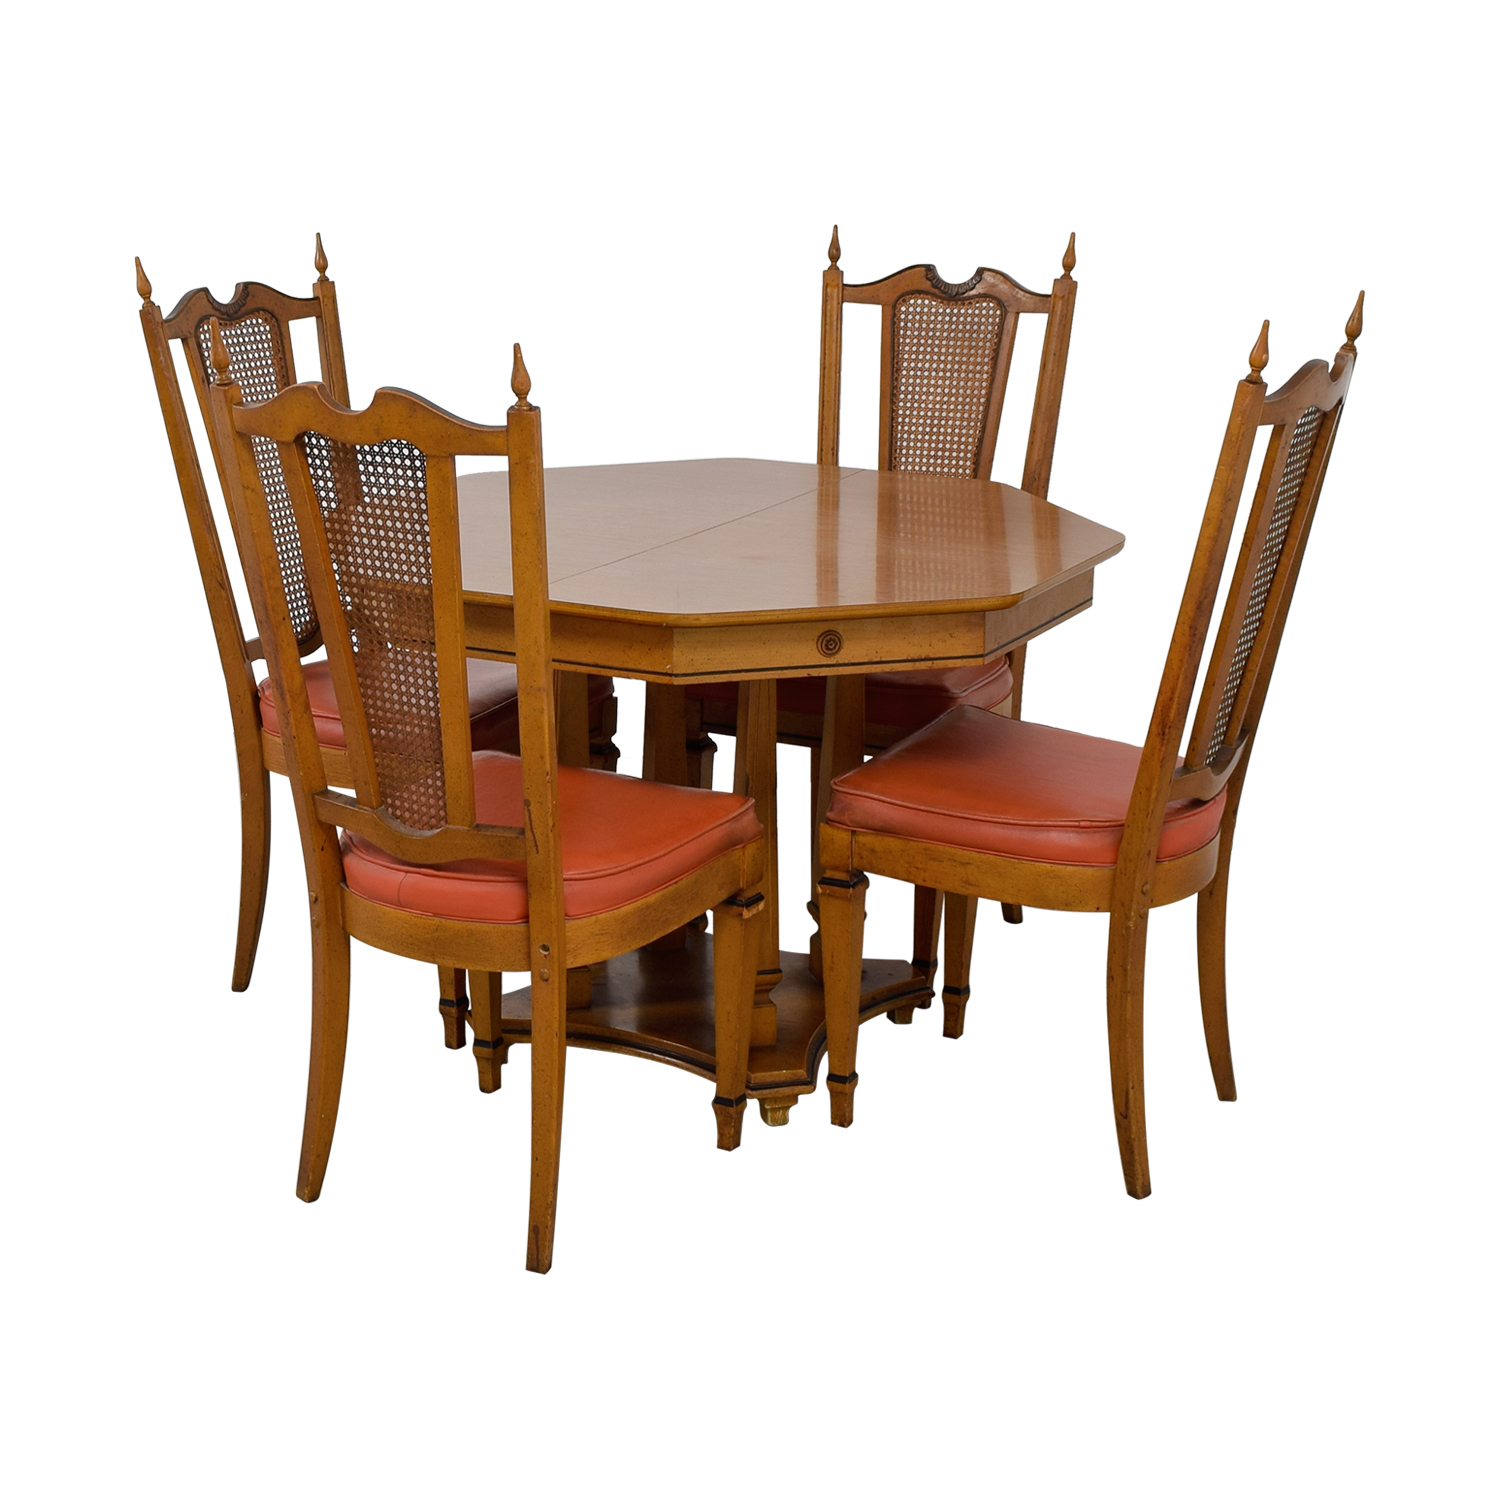 Walter Wabash Walter Wabash Extendable Wood Dining Set with Red Upholstered Canned Chairs Dining Sets